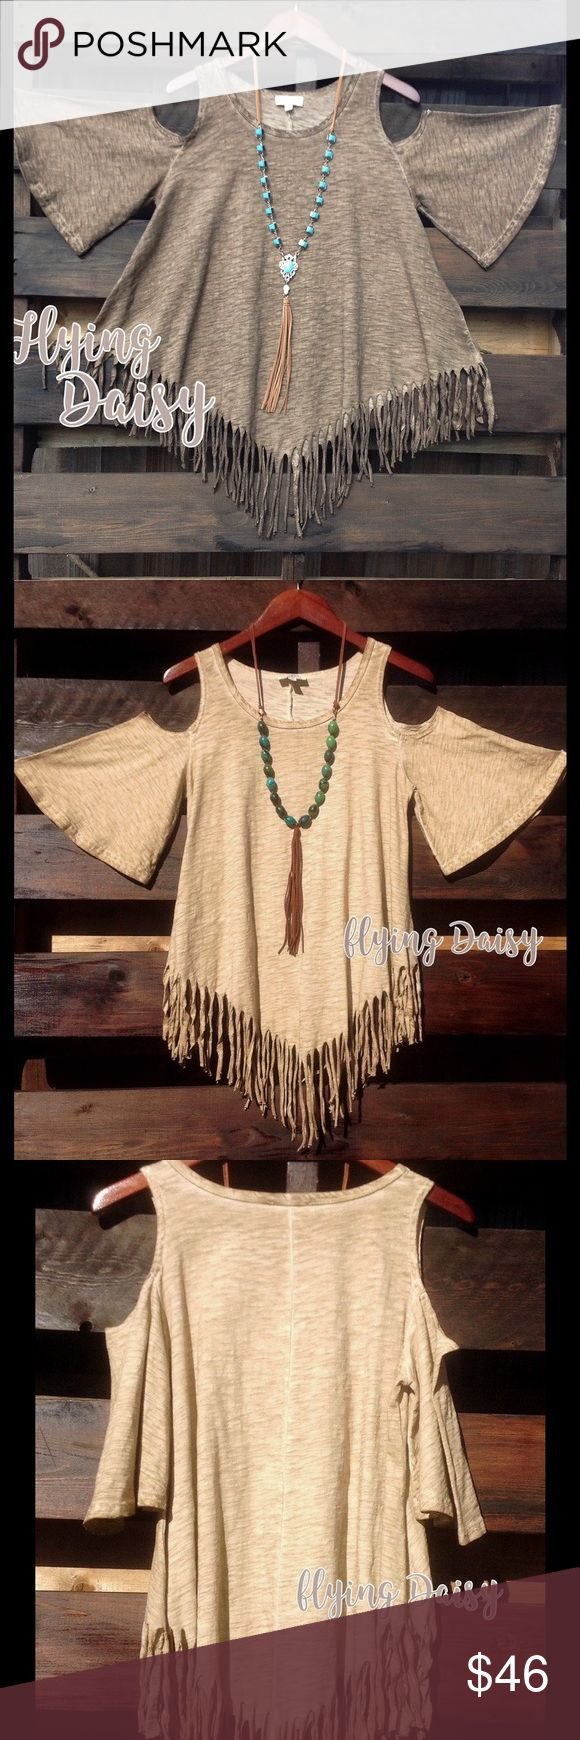 "Plus Size Fringe Cold Shoulder Tunic Top Cowgirl Mocha brown cut out cold shoulder top with fringe.  Flattering asymmetrical cut, made of cotton blend thick fabric. Western boho cowgirl style. Also available in other colors. See pics for the taupe color above. Please see measurements below to get the right fit.   X-Large - 22"" from underarm to underarm. Length from top of shoulder 29"".   1X -  23"" from underarm to underarm. Length from top of shoulder 29.5"".   2X - 24"" from underarm to…"